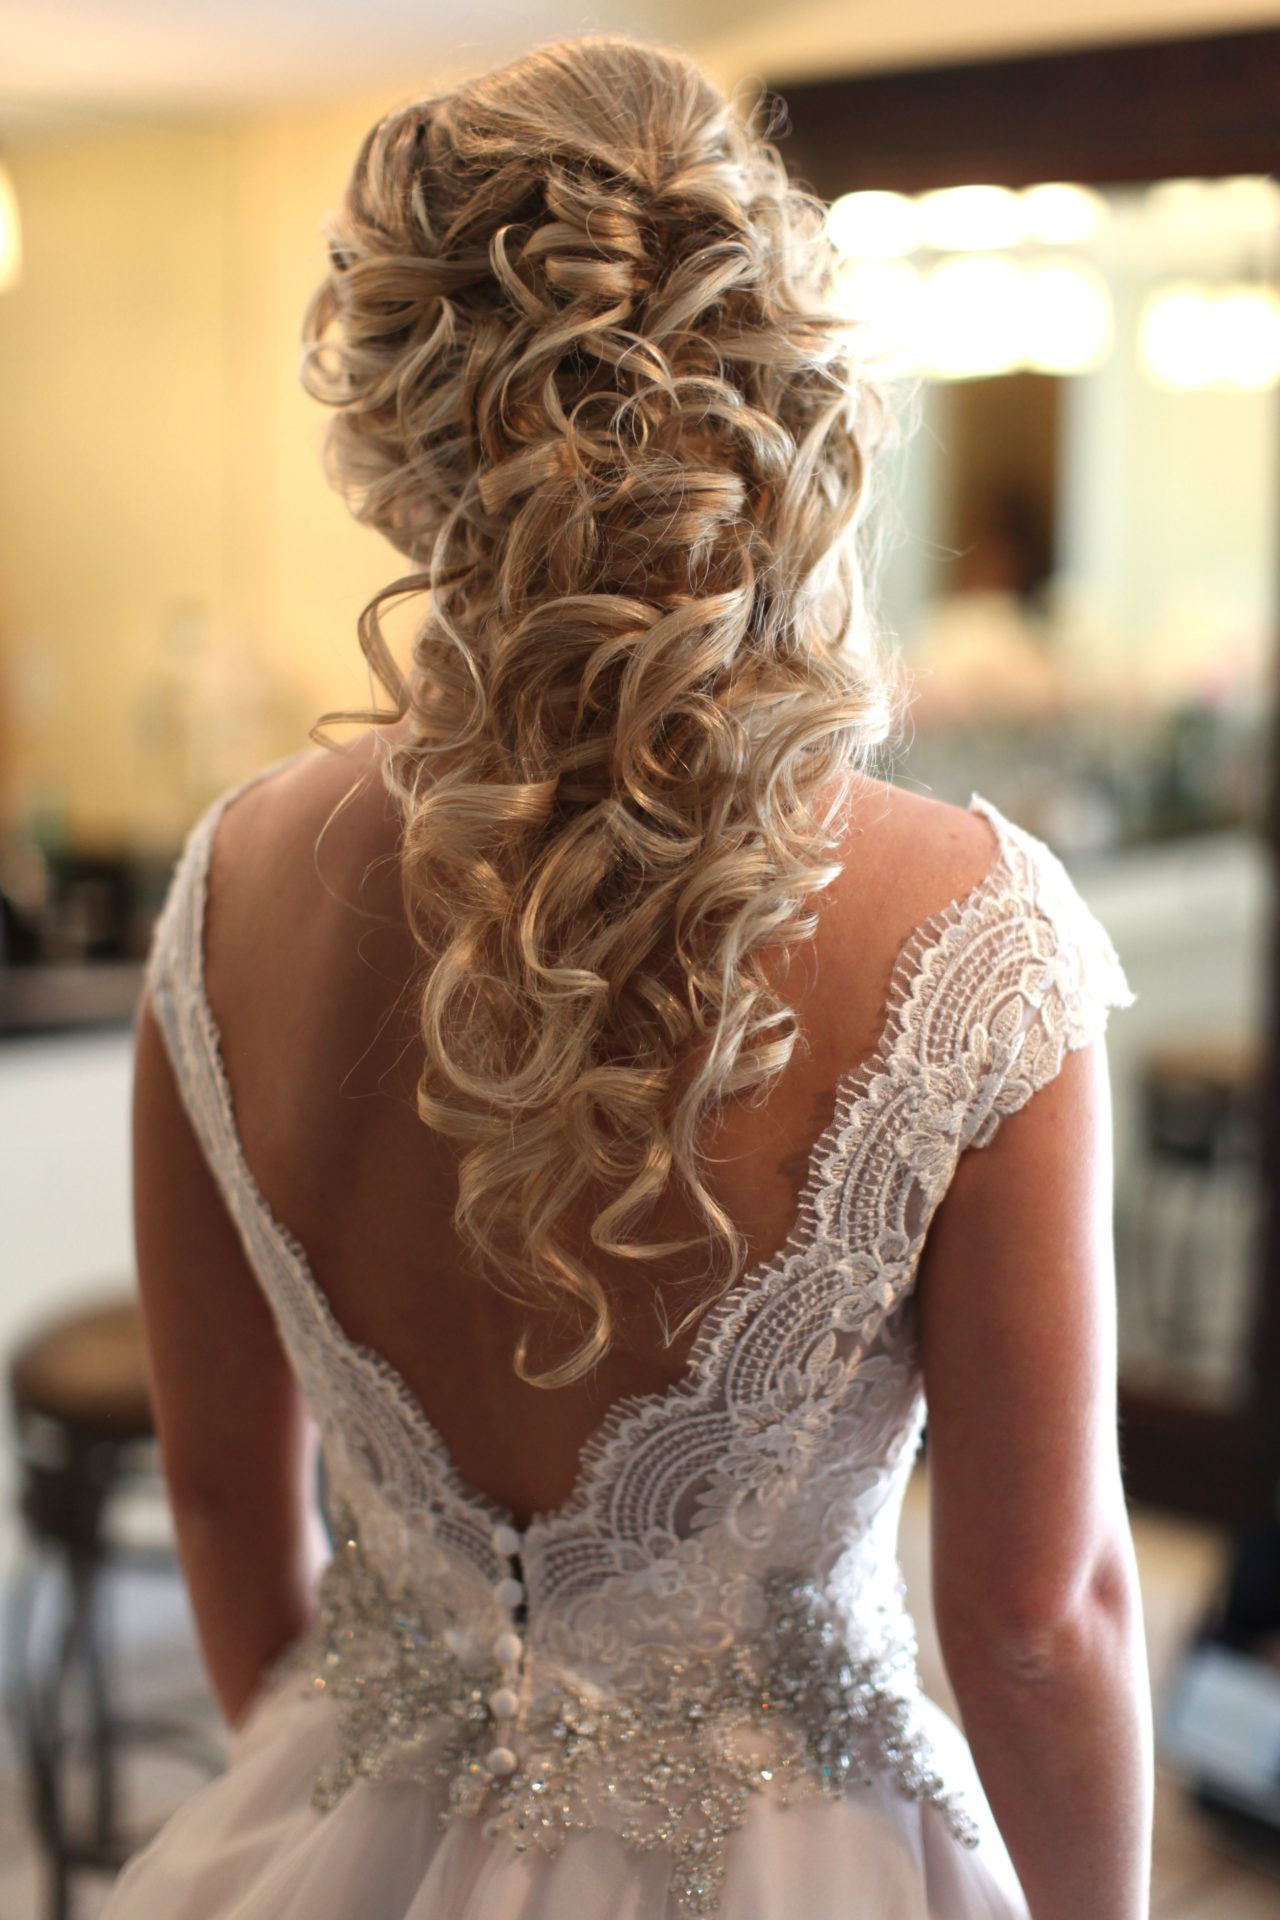 Wedding hair ideas Frederick Maryland